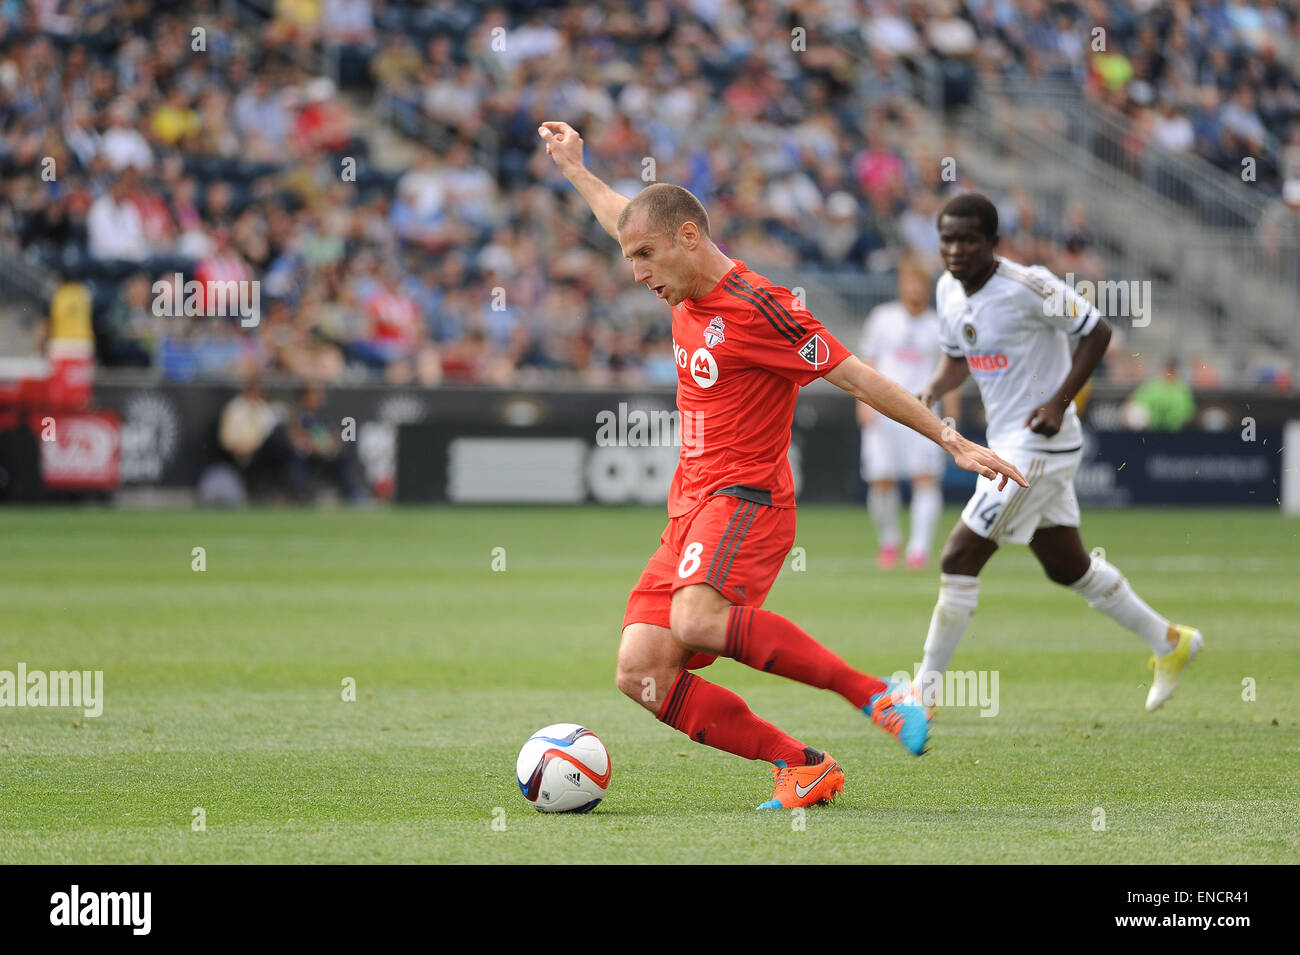 Chester, Pennsylvania, USA. 2nd May, 2015. Toronto FC midfielder, BENOIT CHEYROU (8), pushes the ball down the pitch Stock Photo